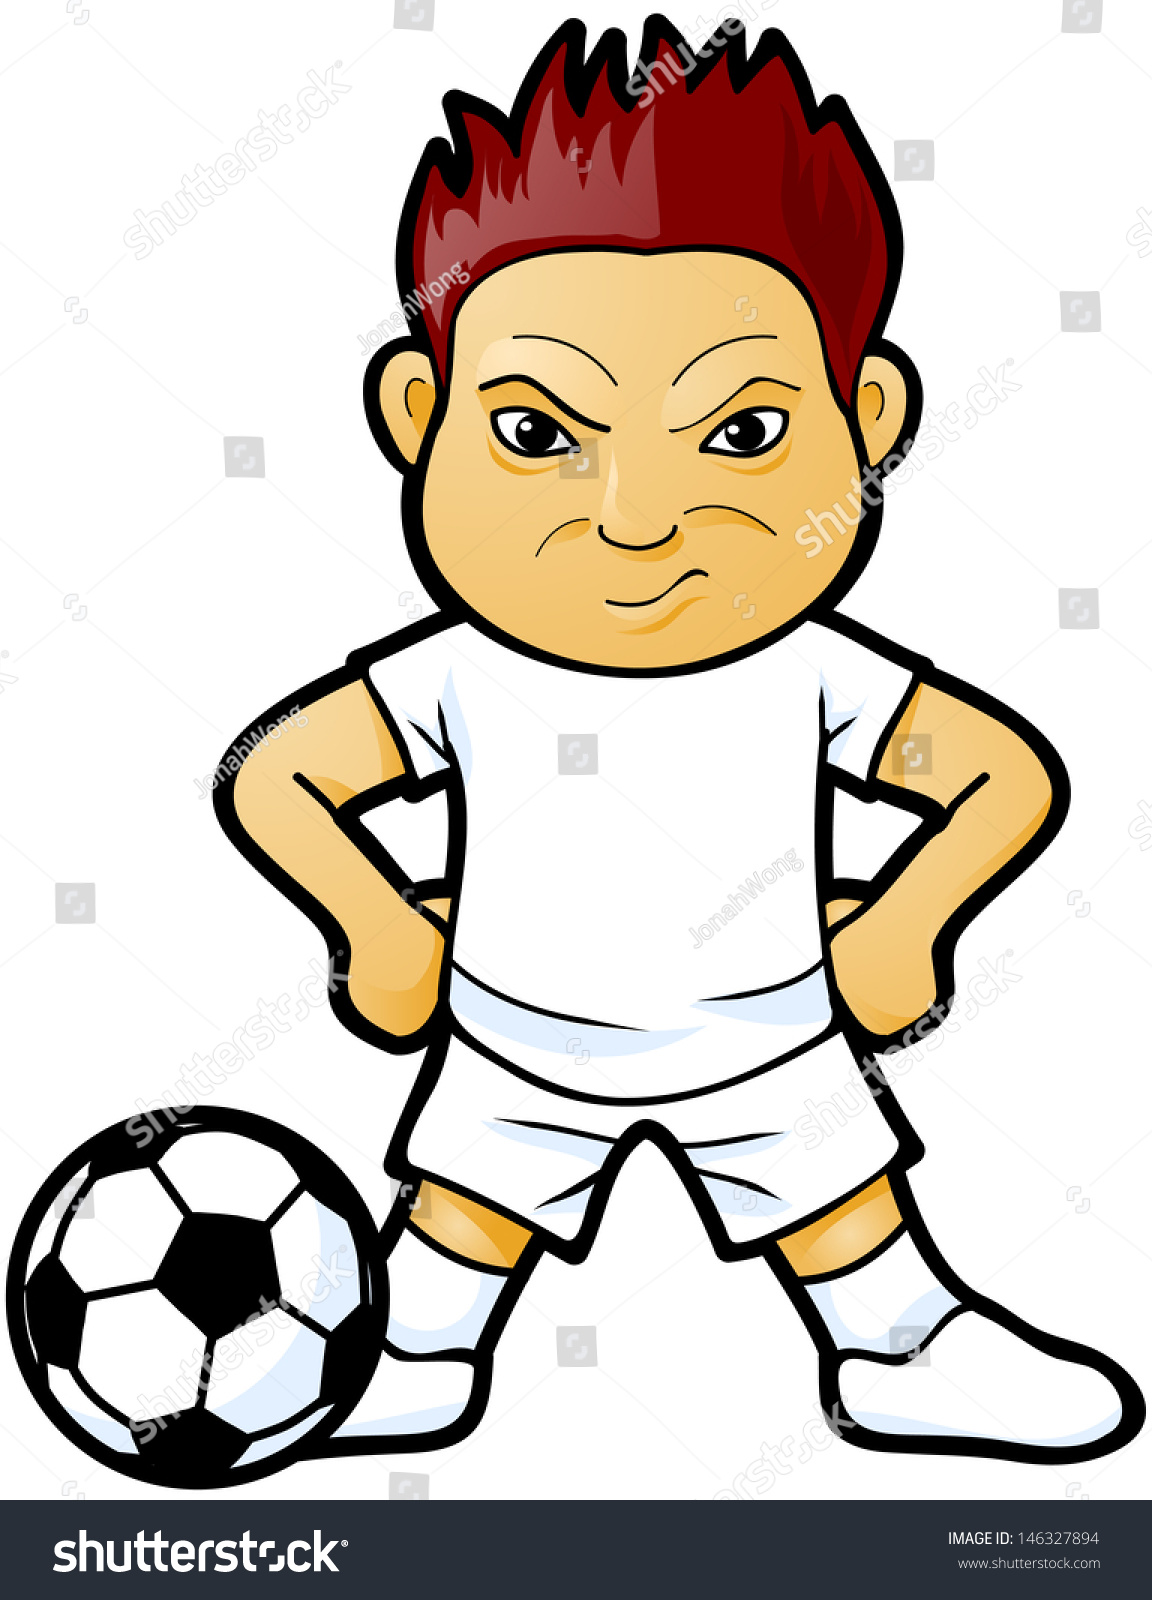 the gallery for gt female soccer player cartoon